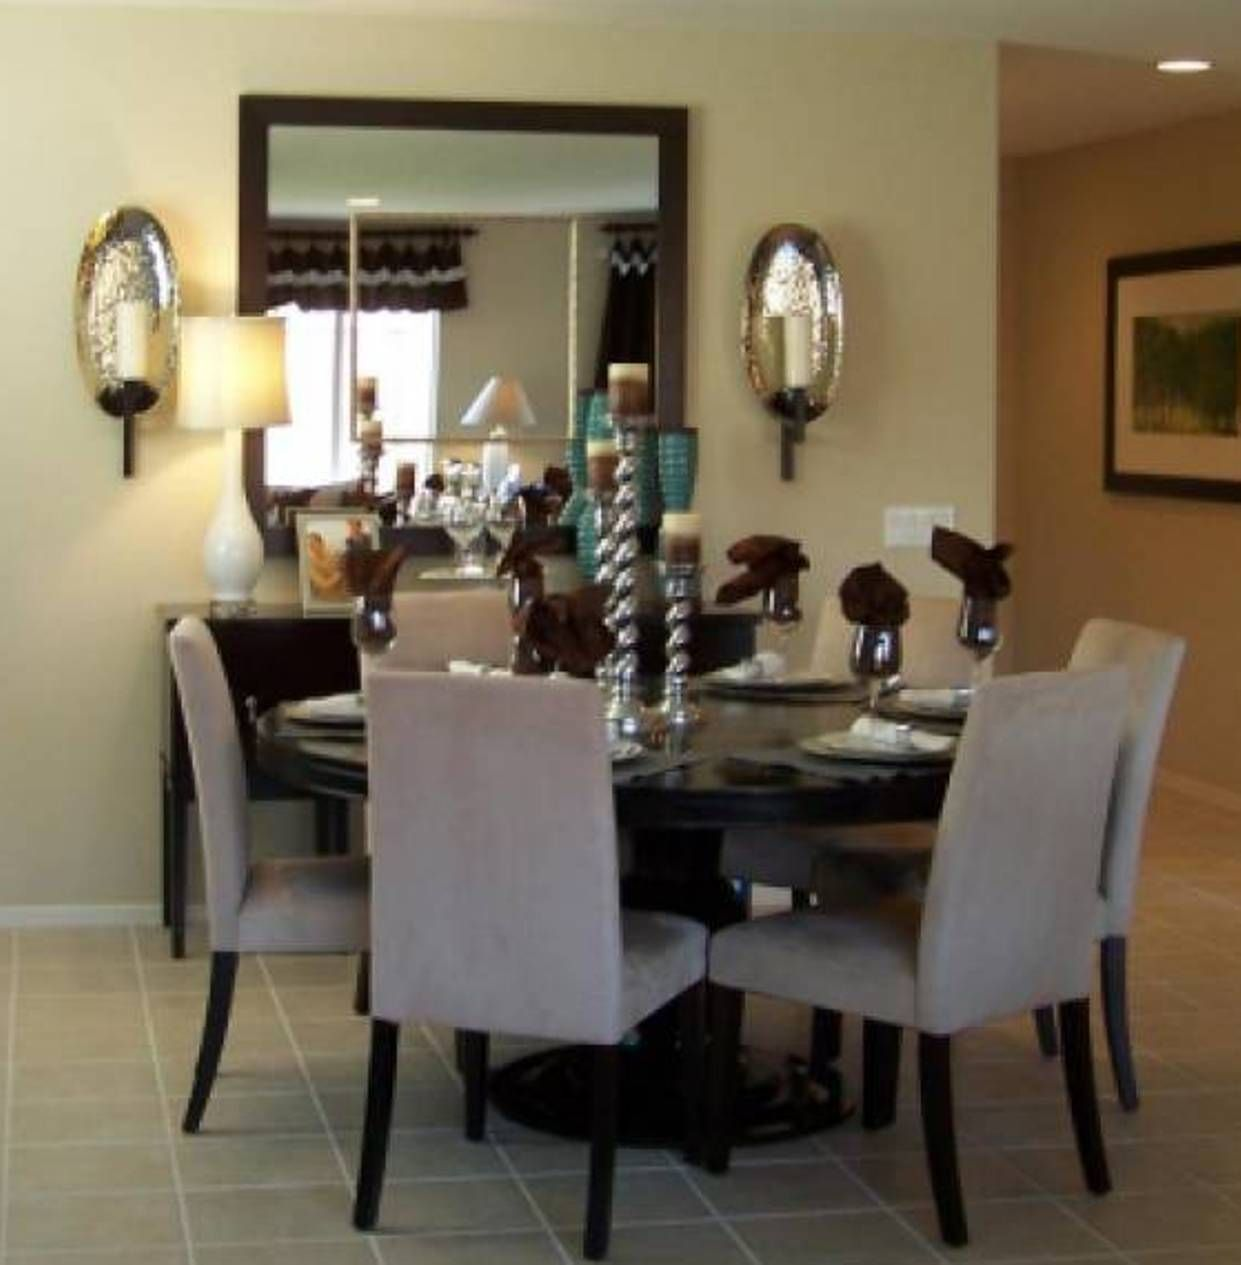 Small Dining Room Decorating With Square Mirror Mirror Dining Room Dining Room Small Small Dining Room Decor